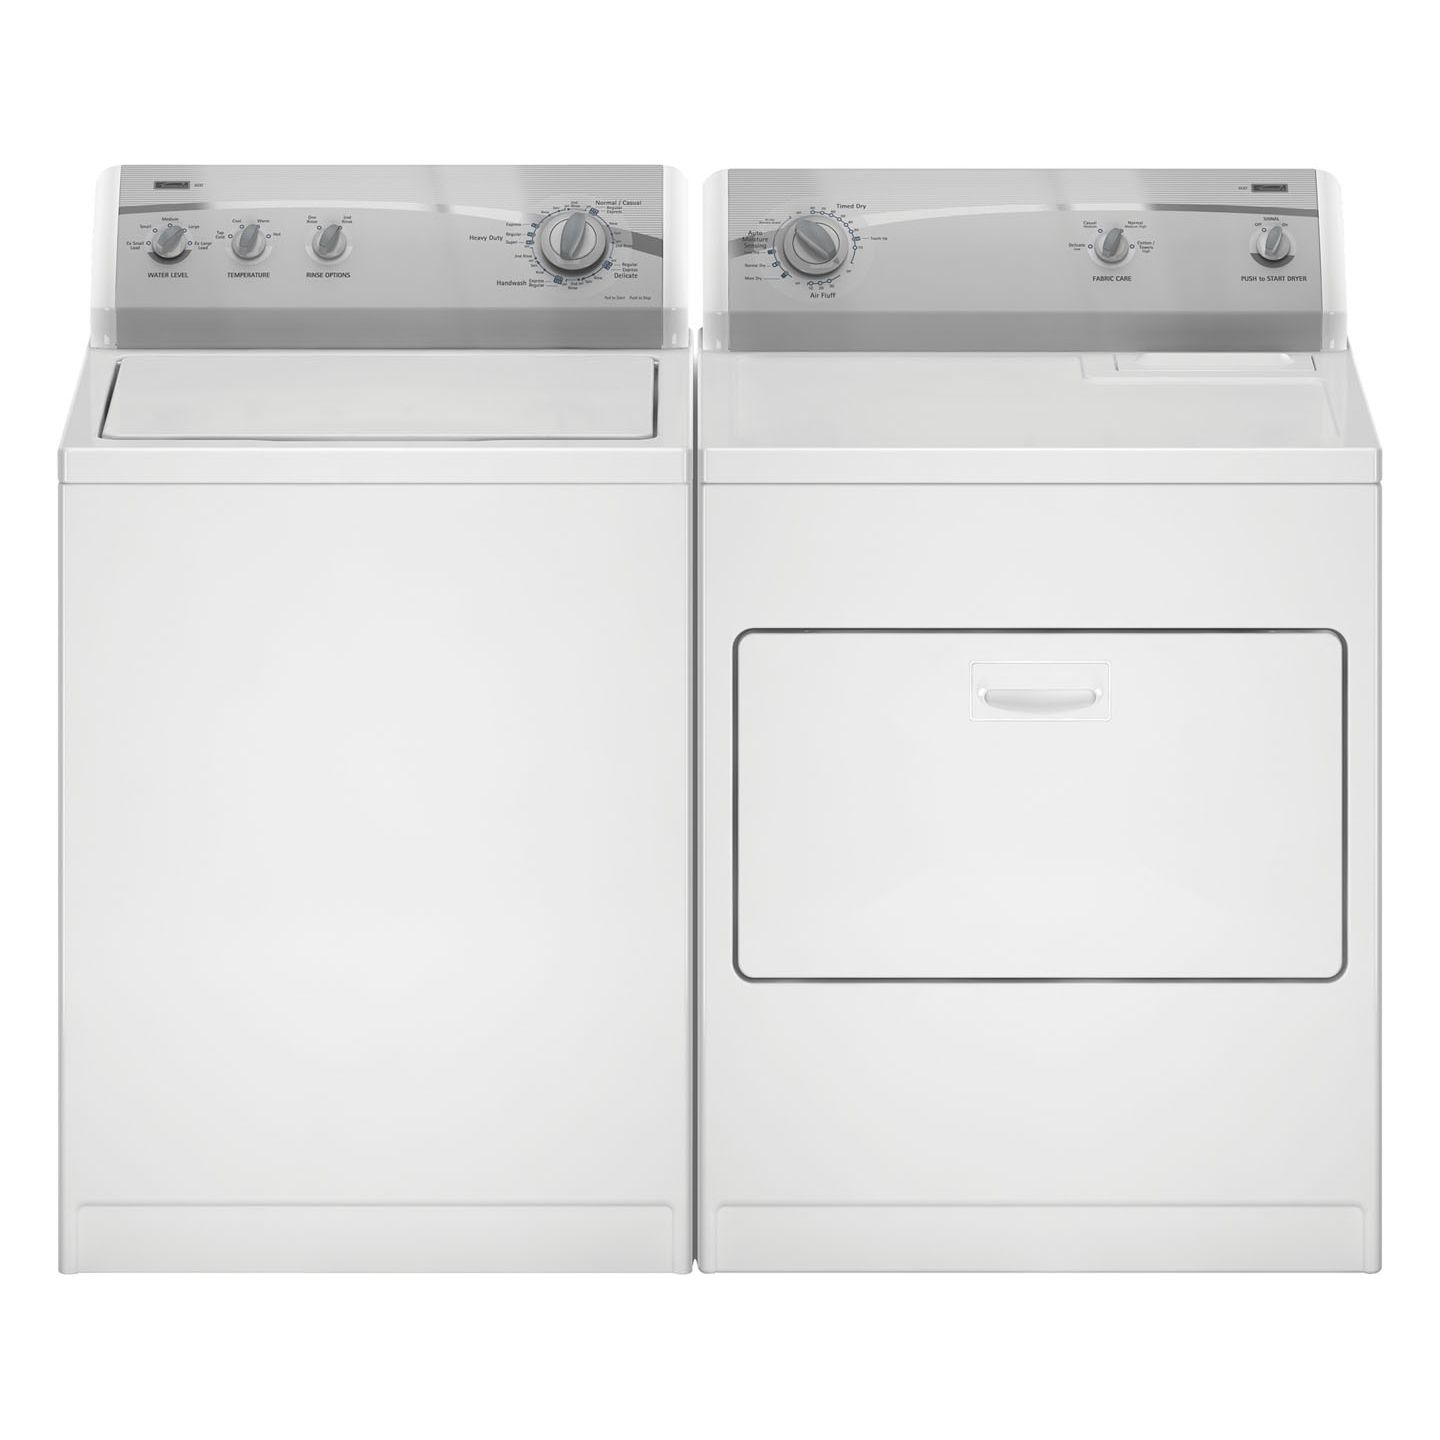 Kenmore 600 7.0 cu. ft. Electric Dryer - 6962